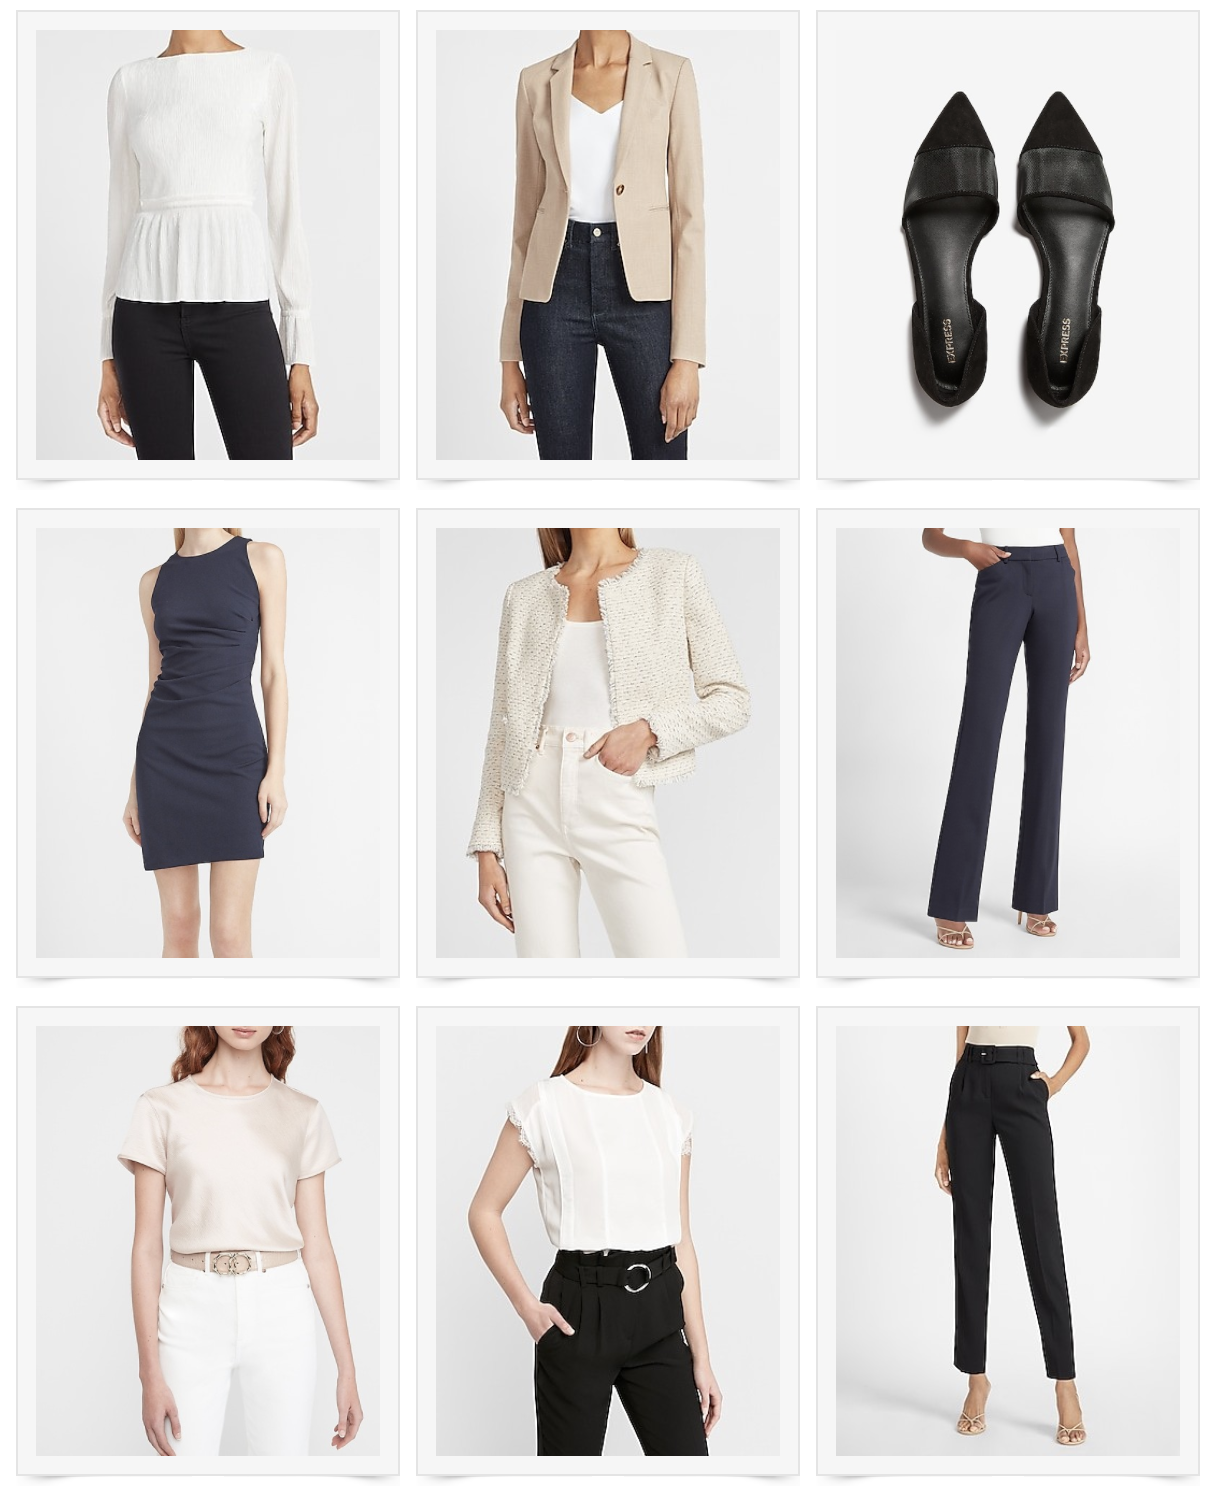 Medical School Clinical Attire Style Saturday: Express Sale!